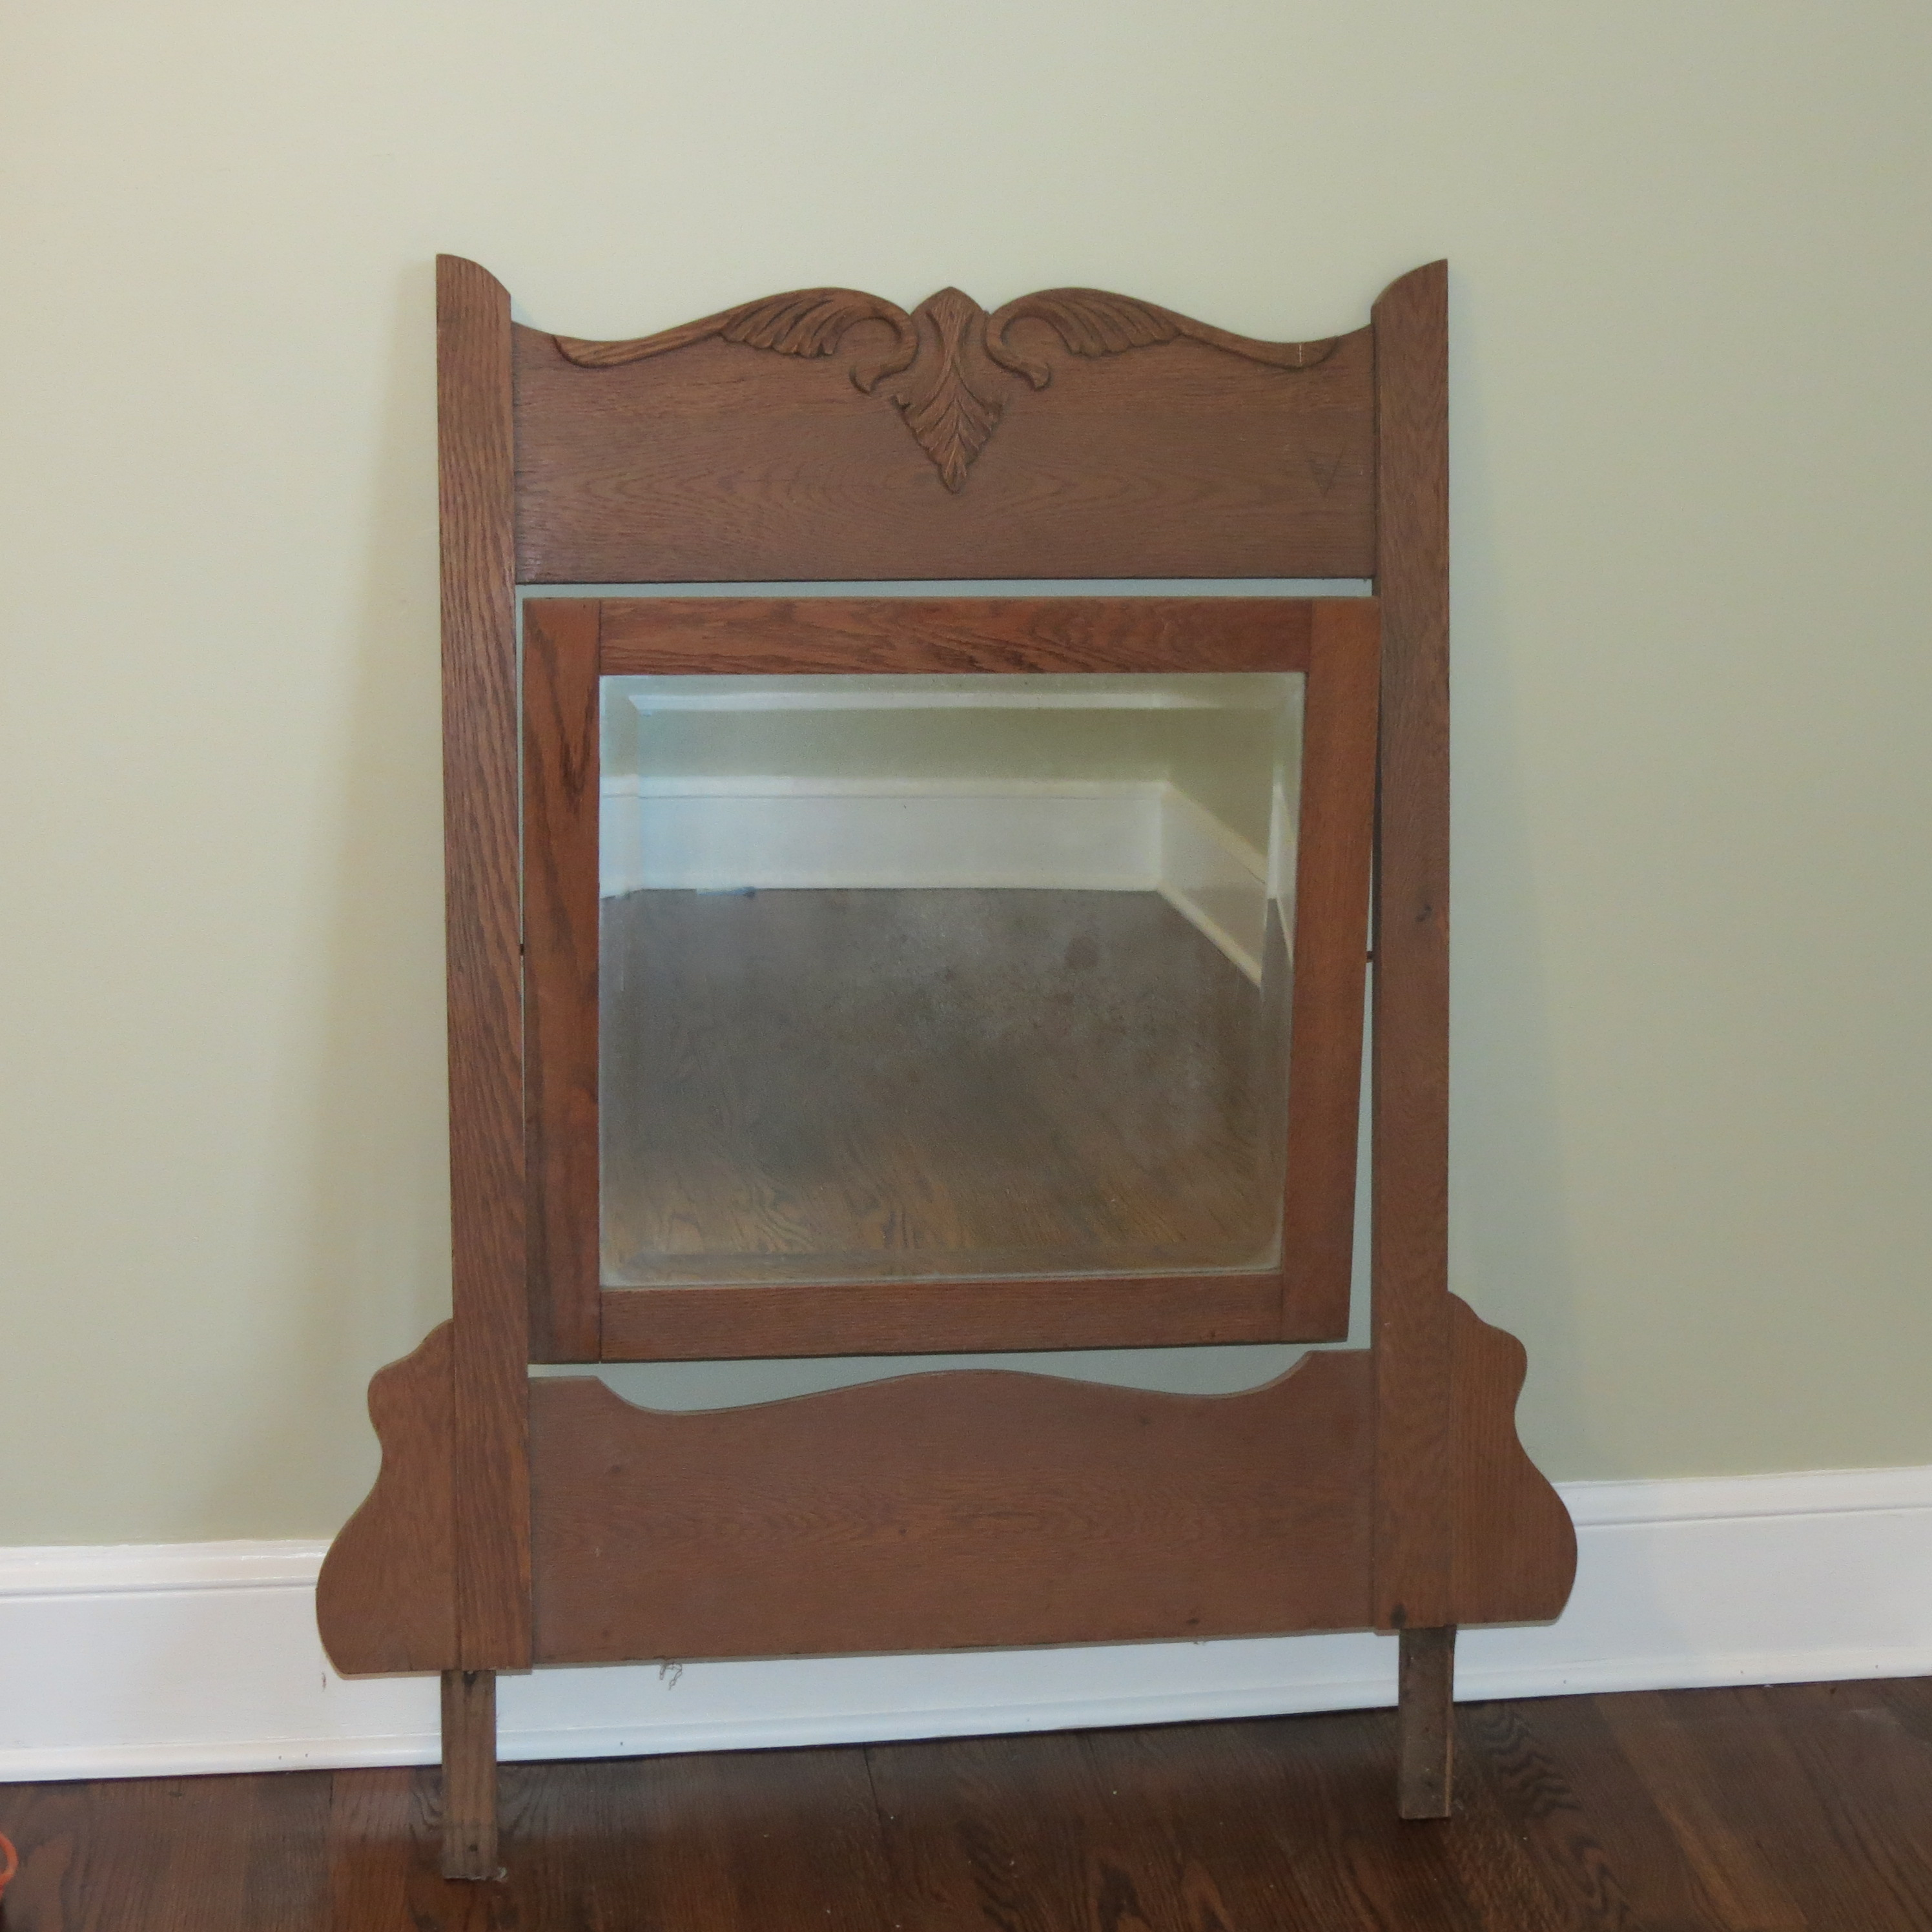 ashley mirror design garden shipping free product and ledelle today signature home dresser overstock by mirrors